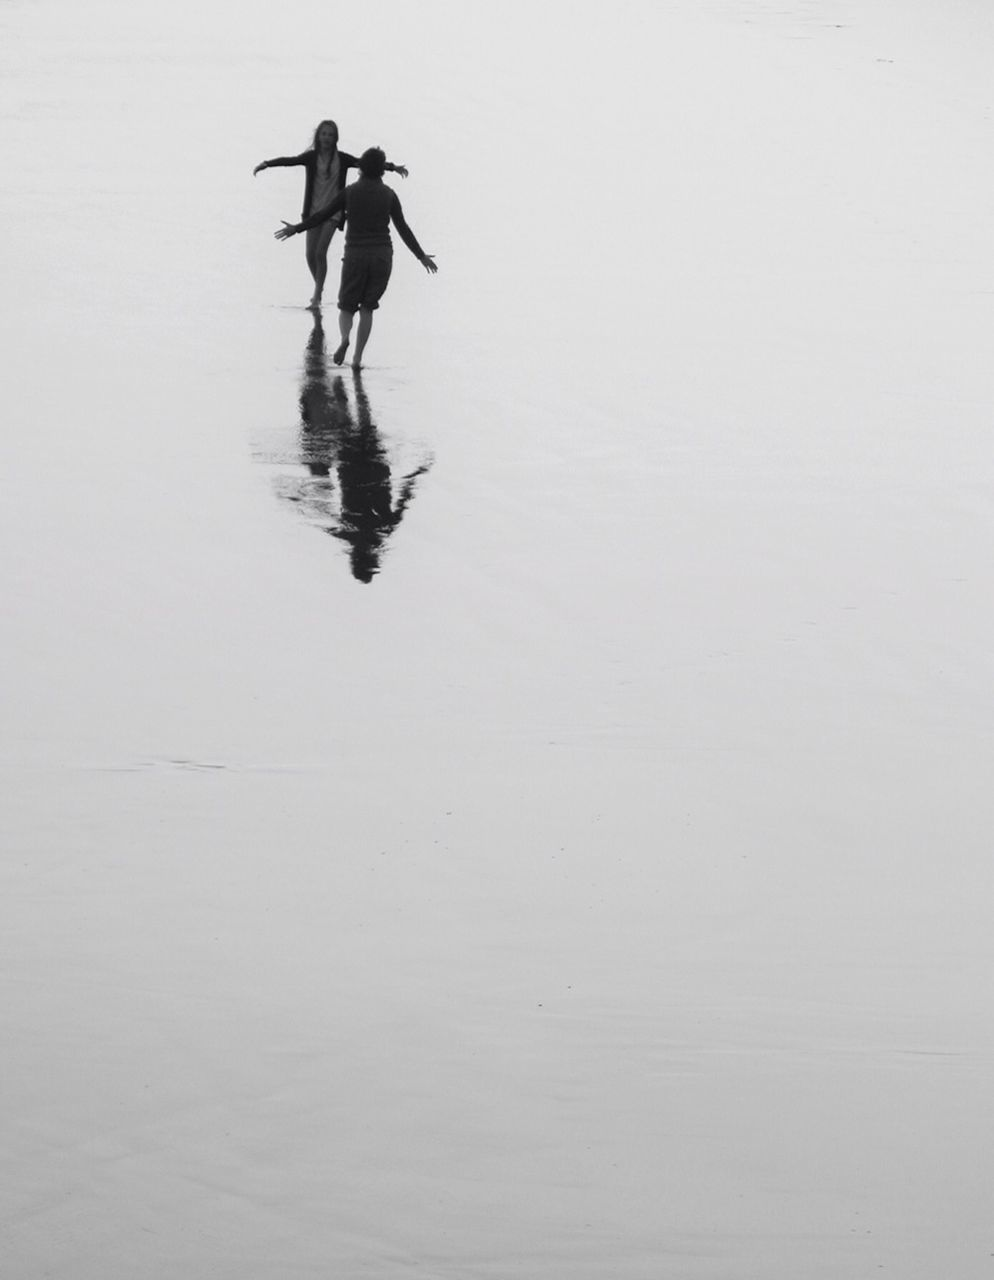 oar, nature, adventure, real people, two people, silhouette, outdoors, day, men, water, rowing, people